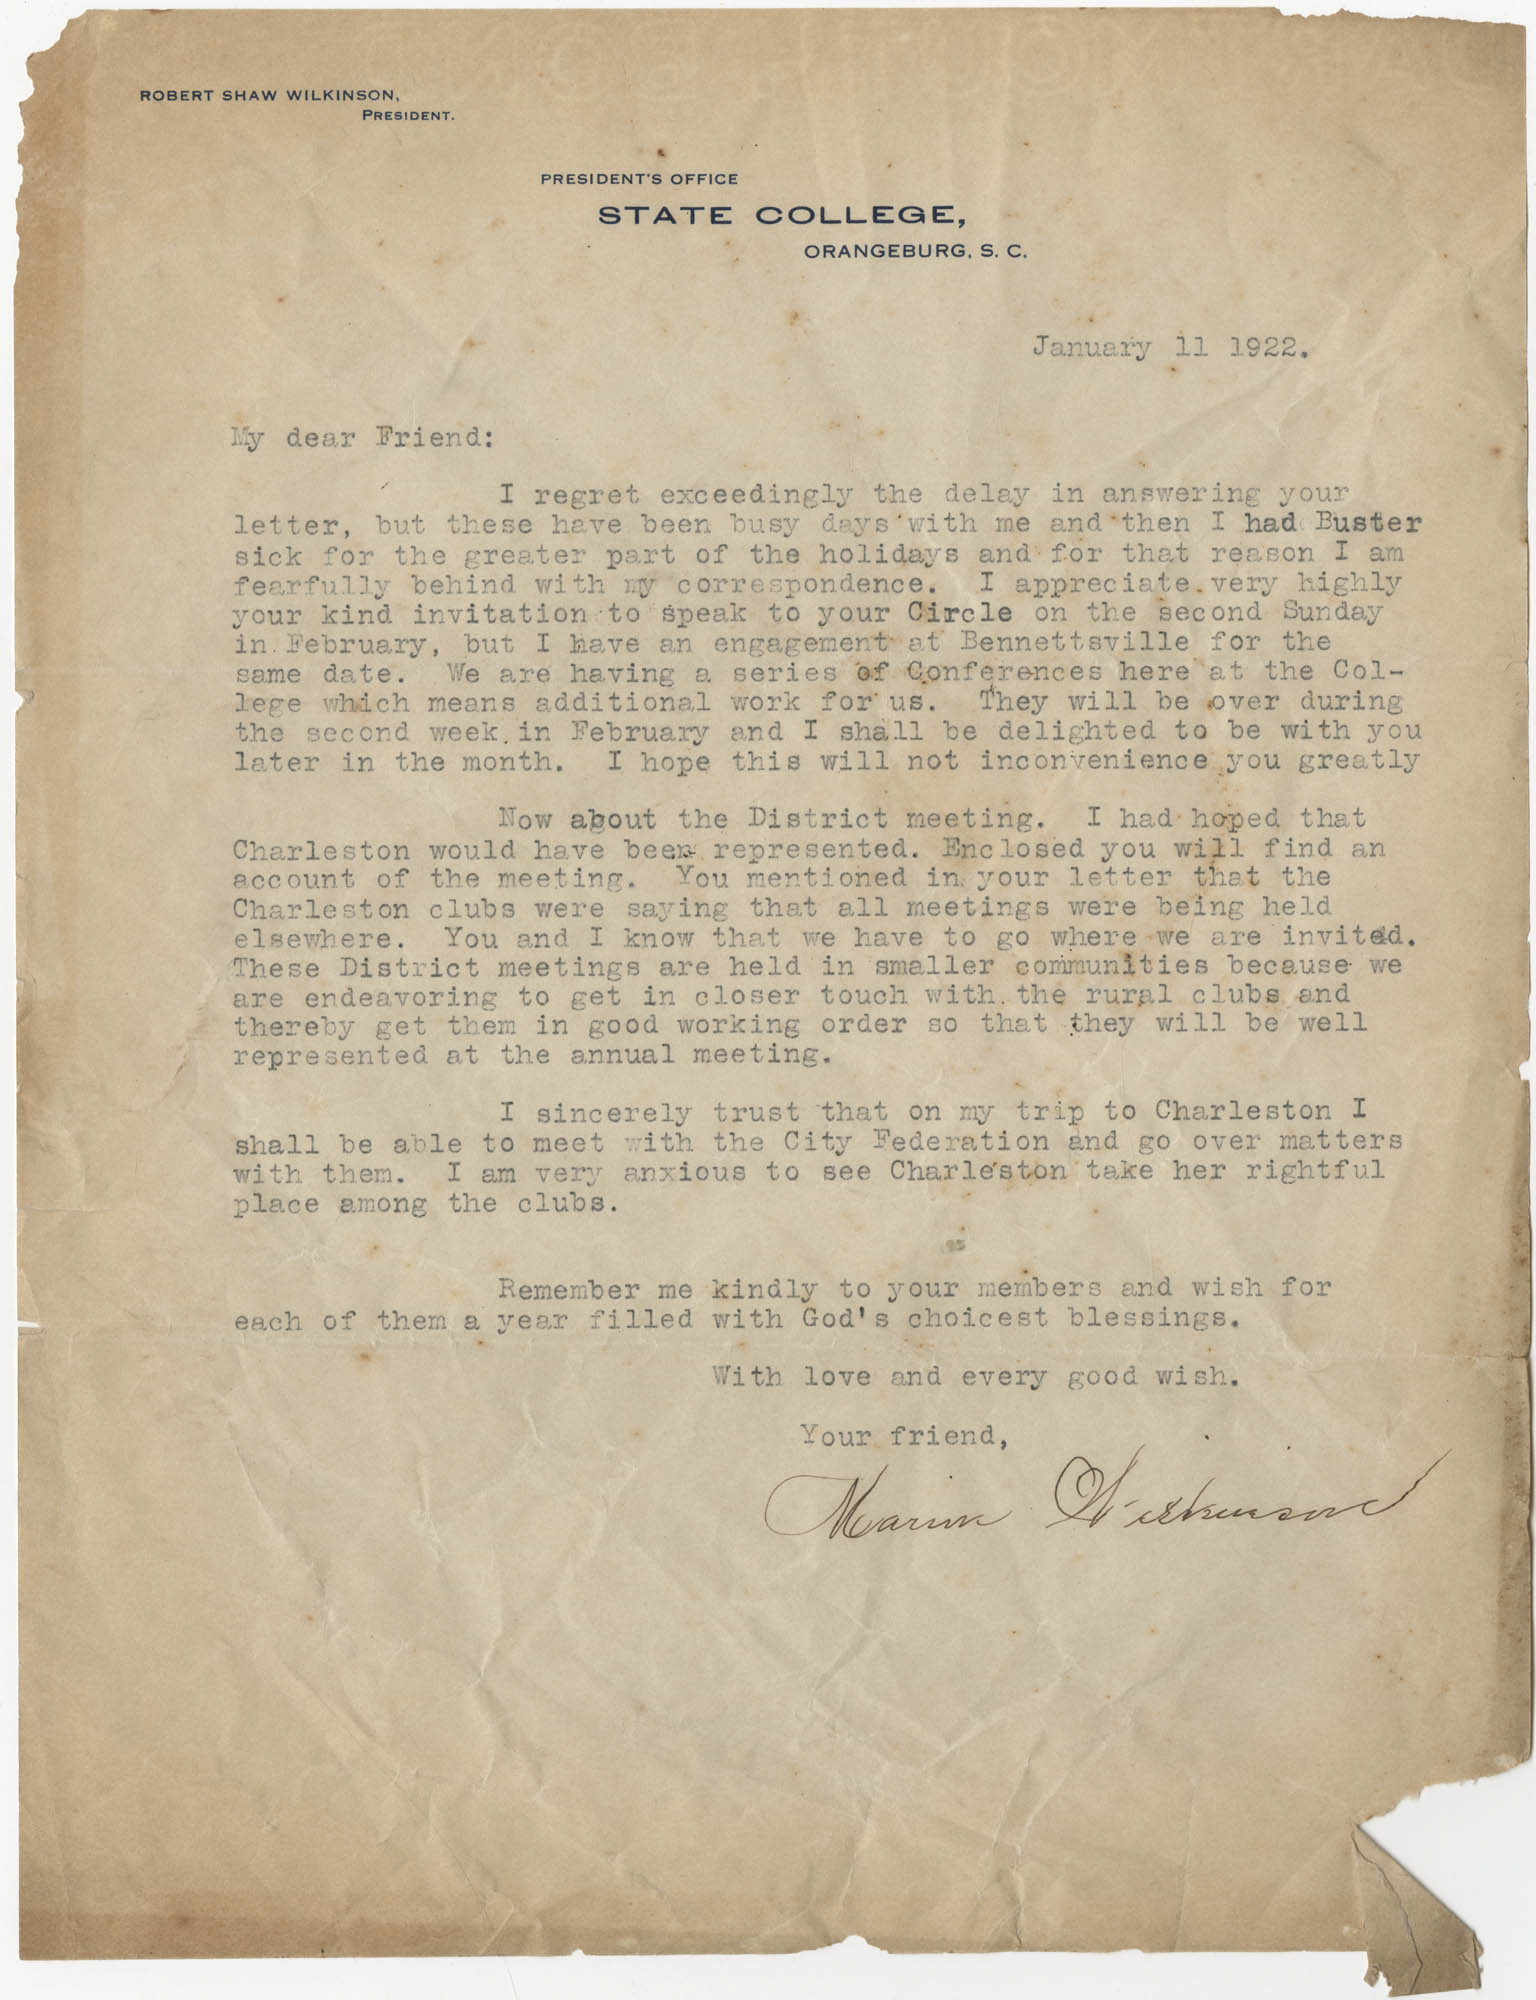 Letter from the Office of Robert Shaw Wilkinson, January 11, 1922